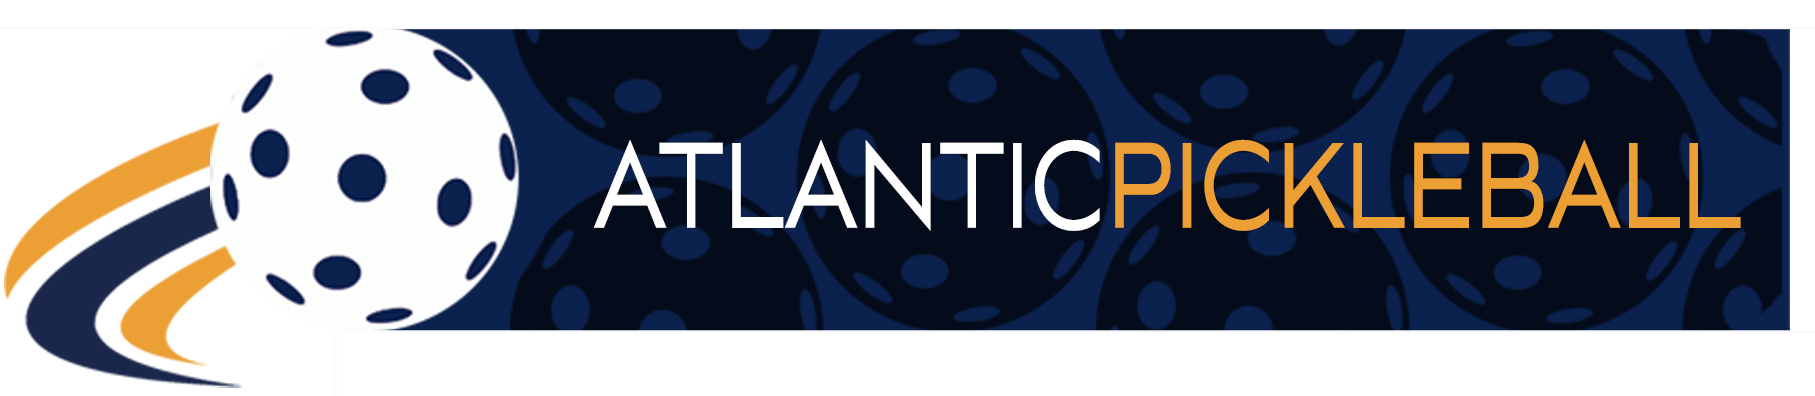 Atlantic Pickleball Logo